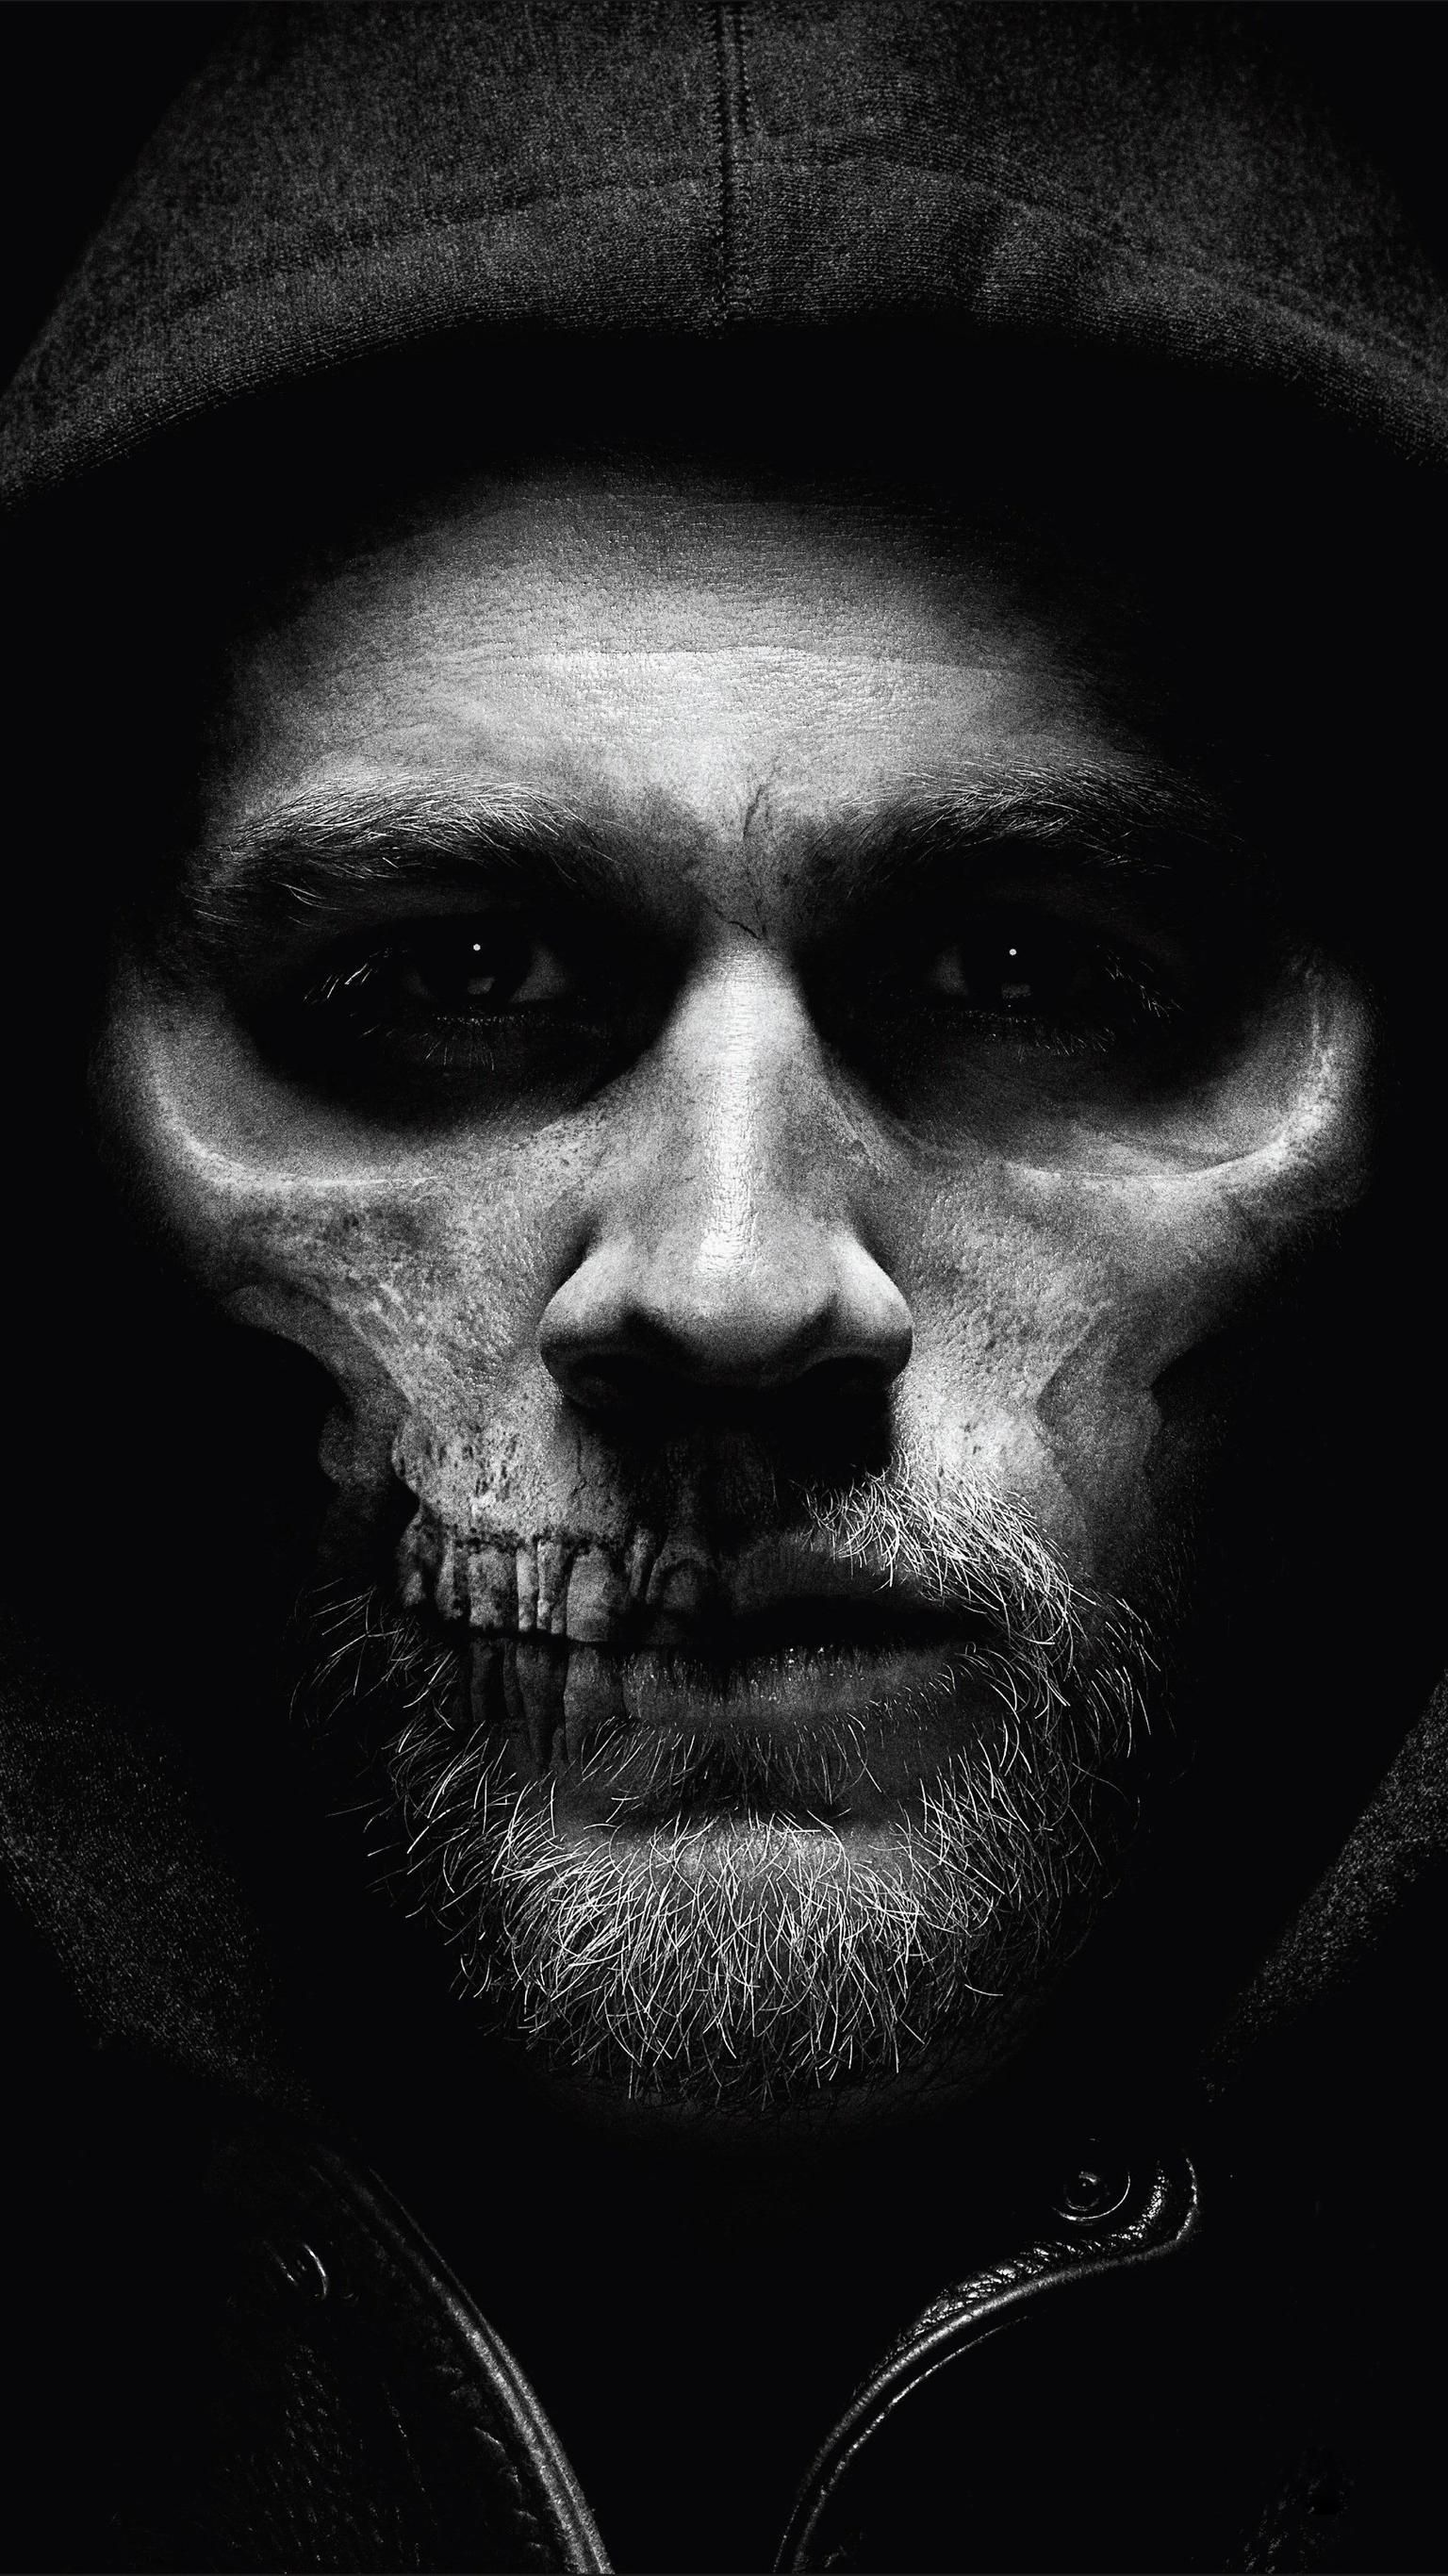 Sons Of Anarchy Phone Wallpaper Moviemania Sons Of Anarchy Tattoos Phone Wallpaper For Men Sons Of Anarchy